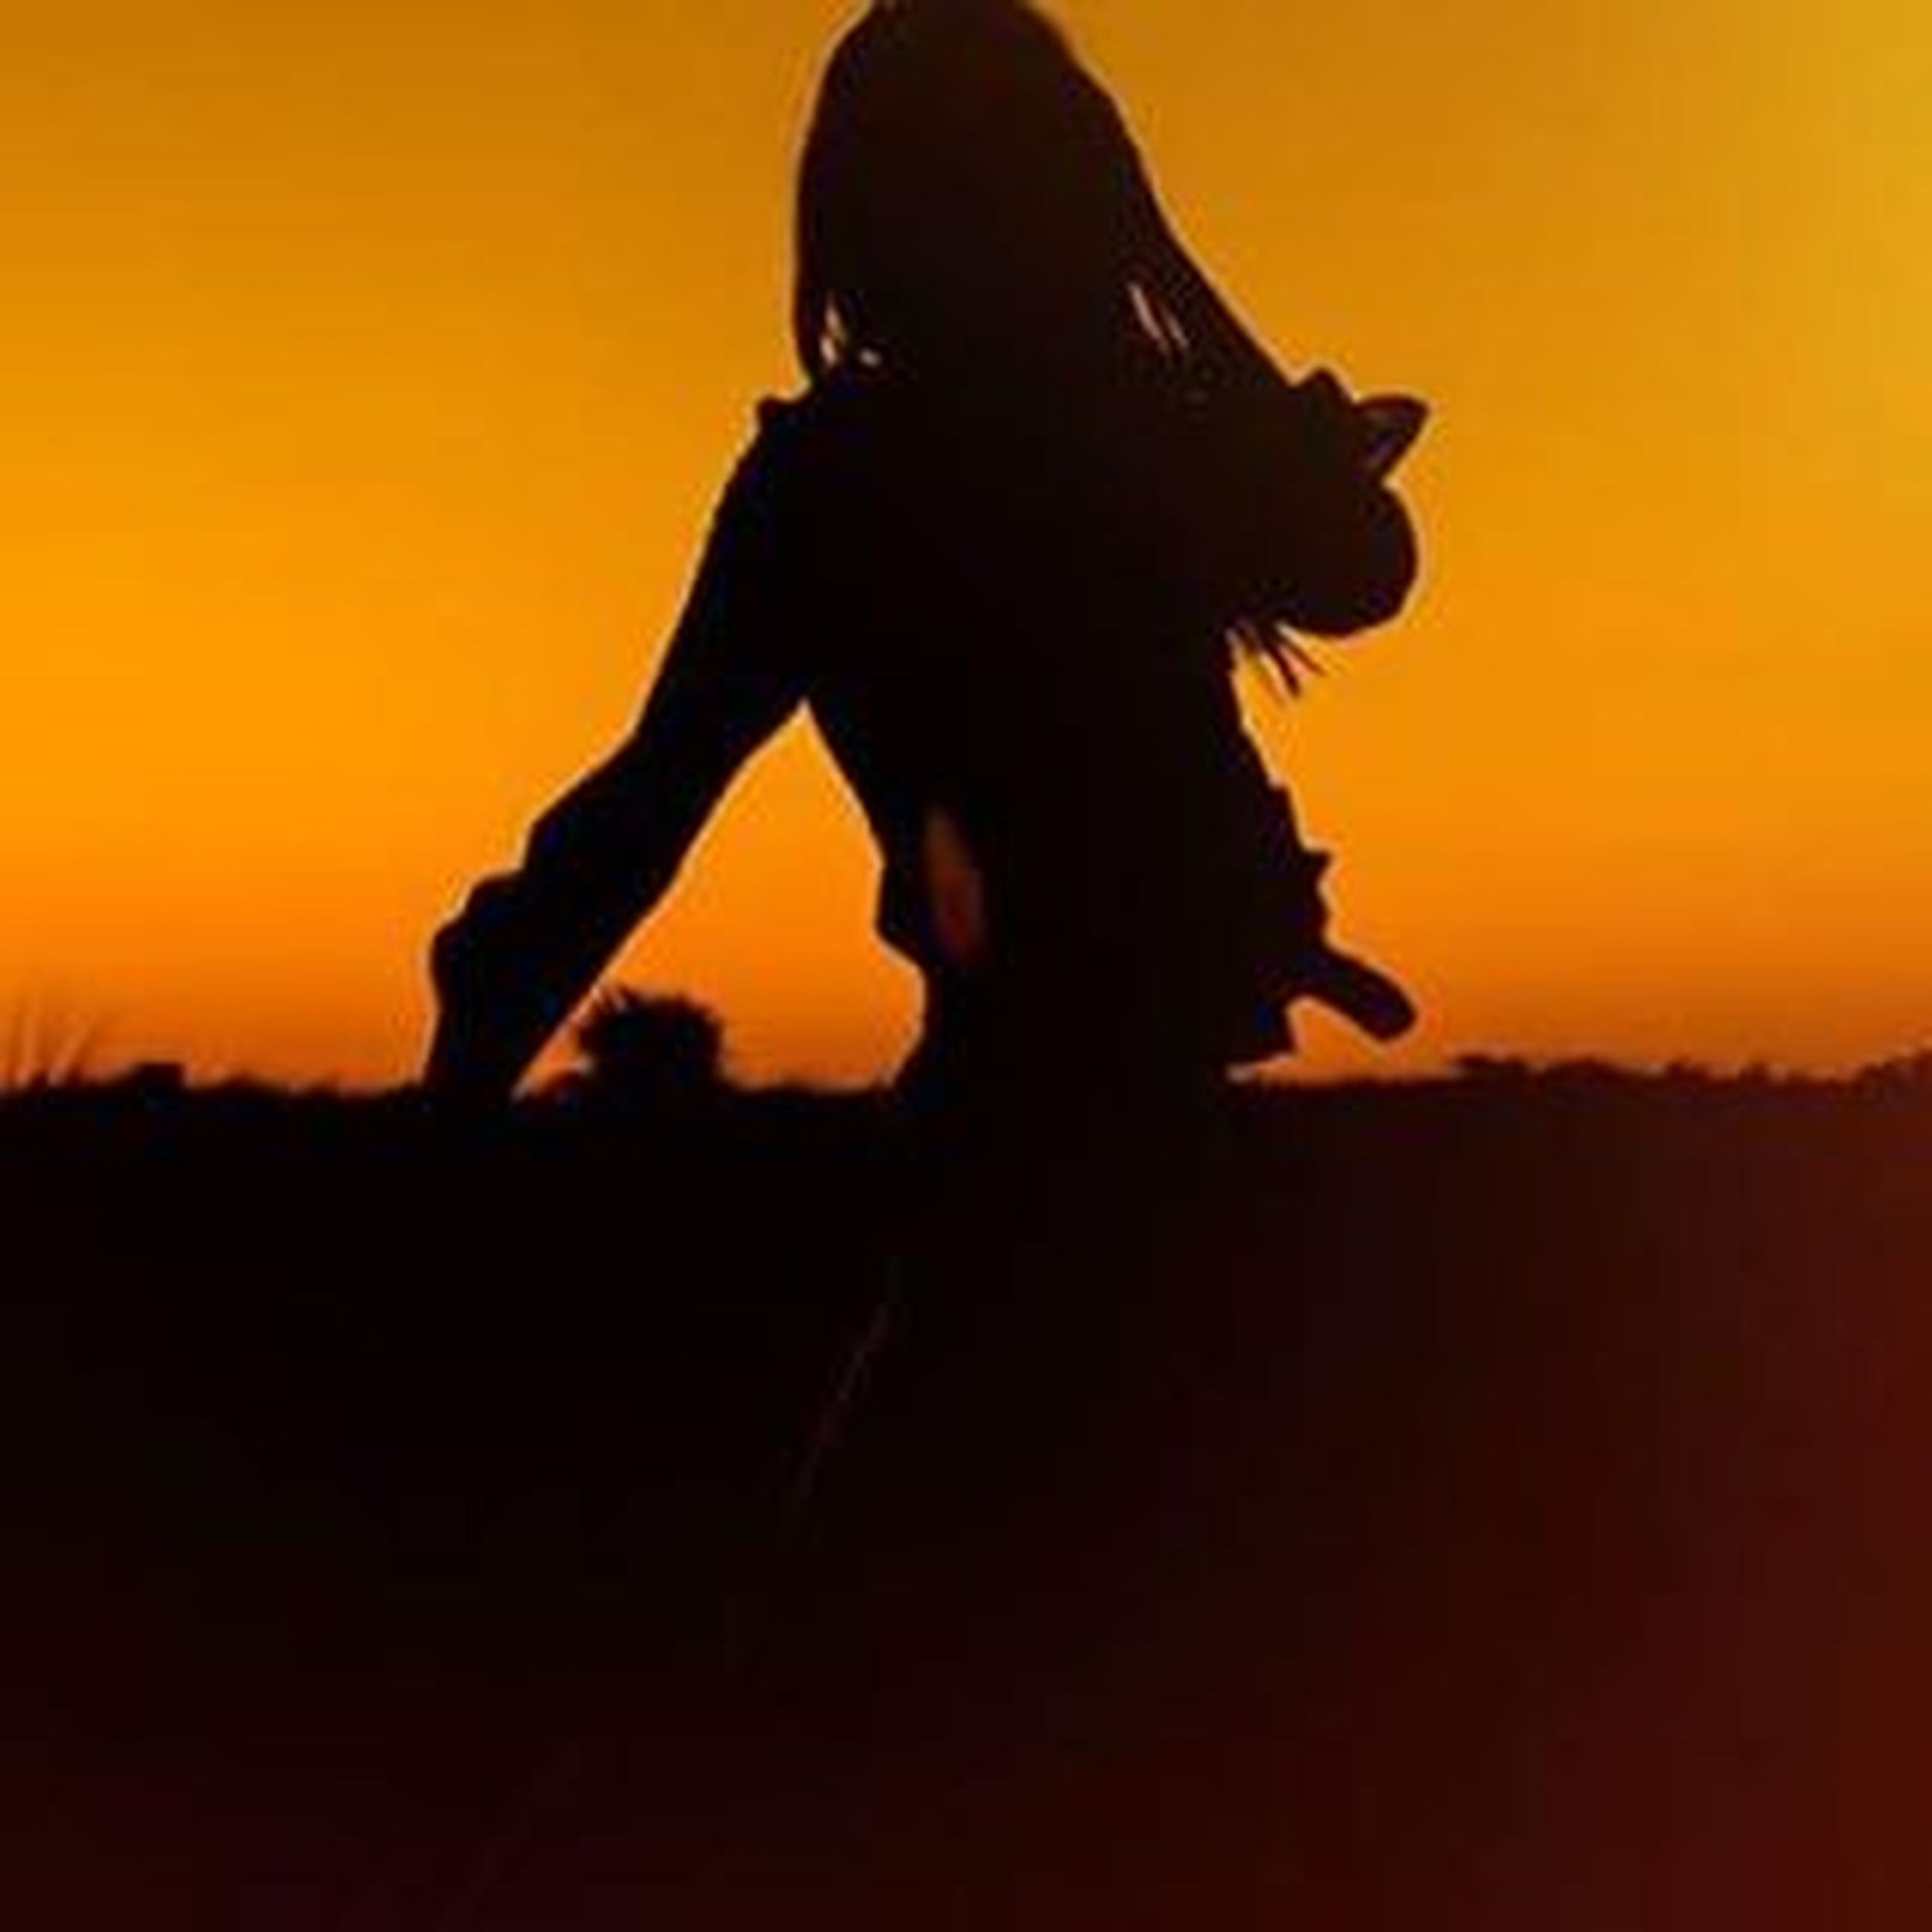 sunset, silhouette, orange color, standing, leisure activity, lifestyles, copy space, beauty in nature, field, side view, nature, sky, three quarter length, outdoors, tranquility, landscape, full length, person